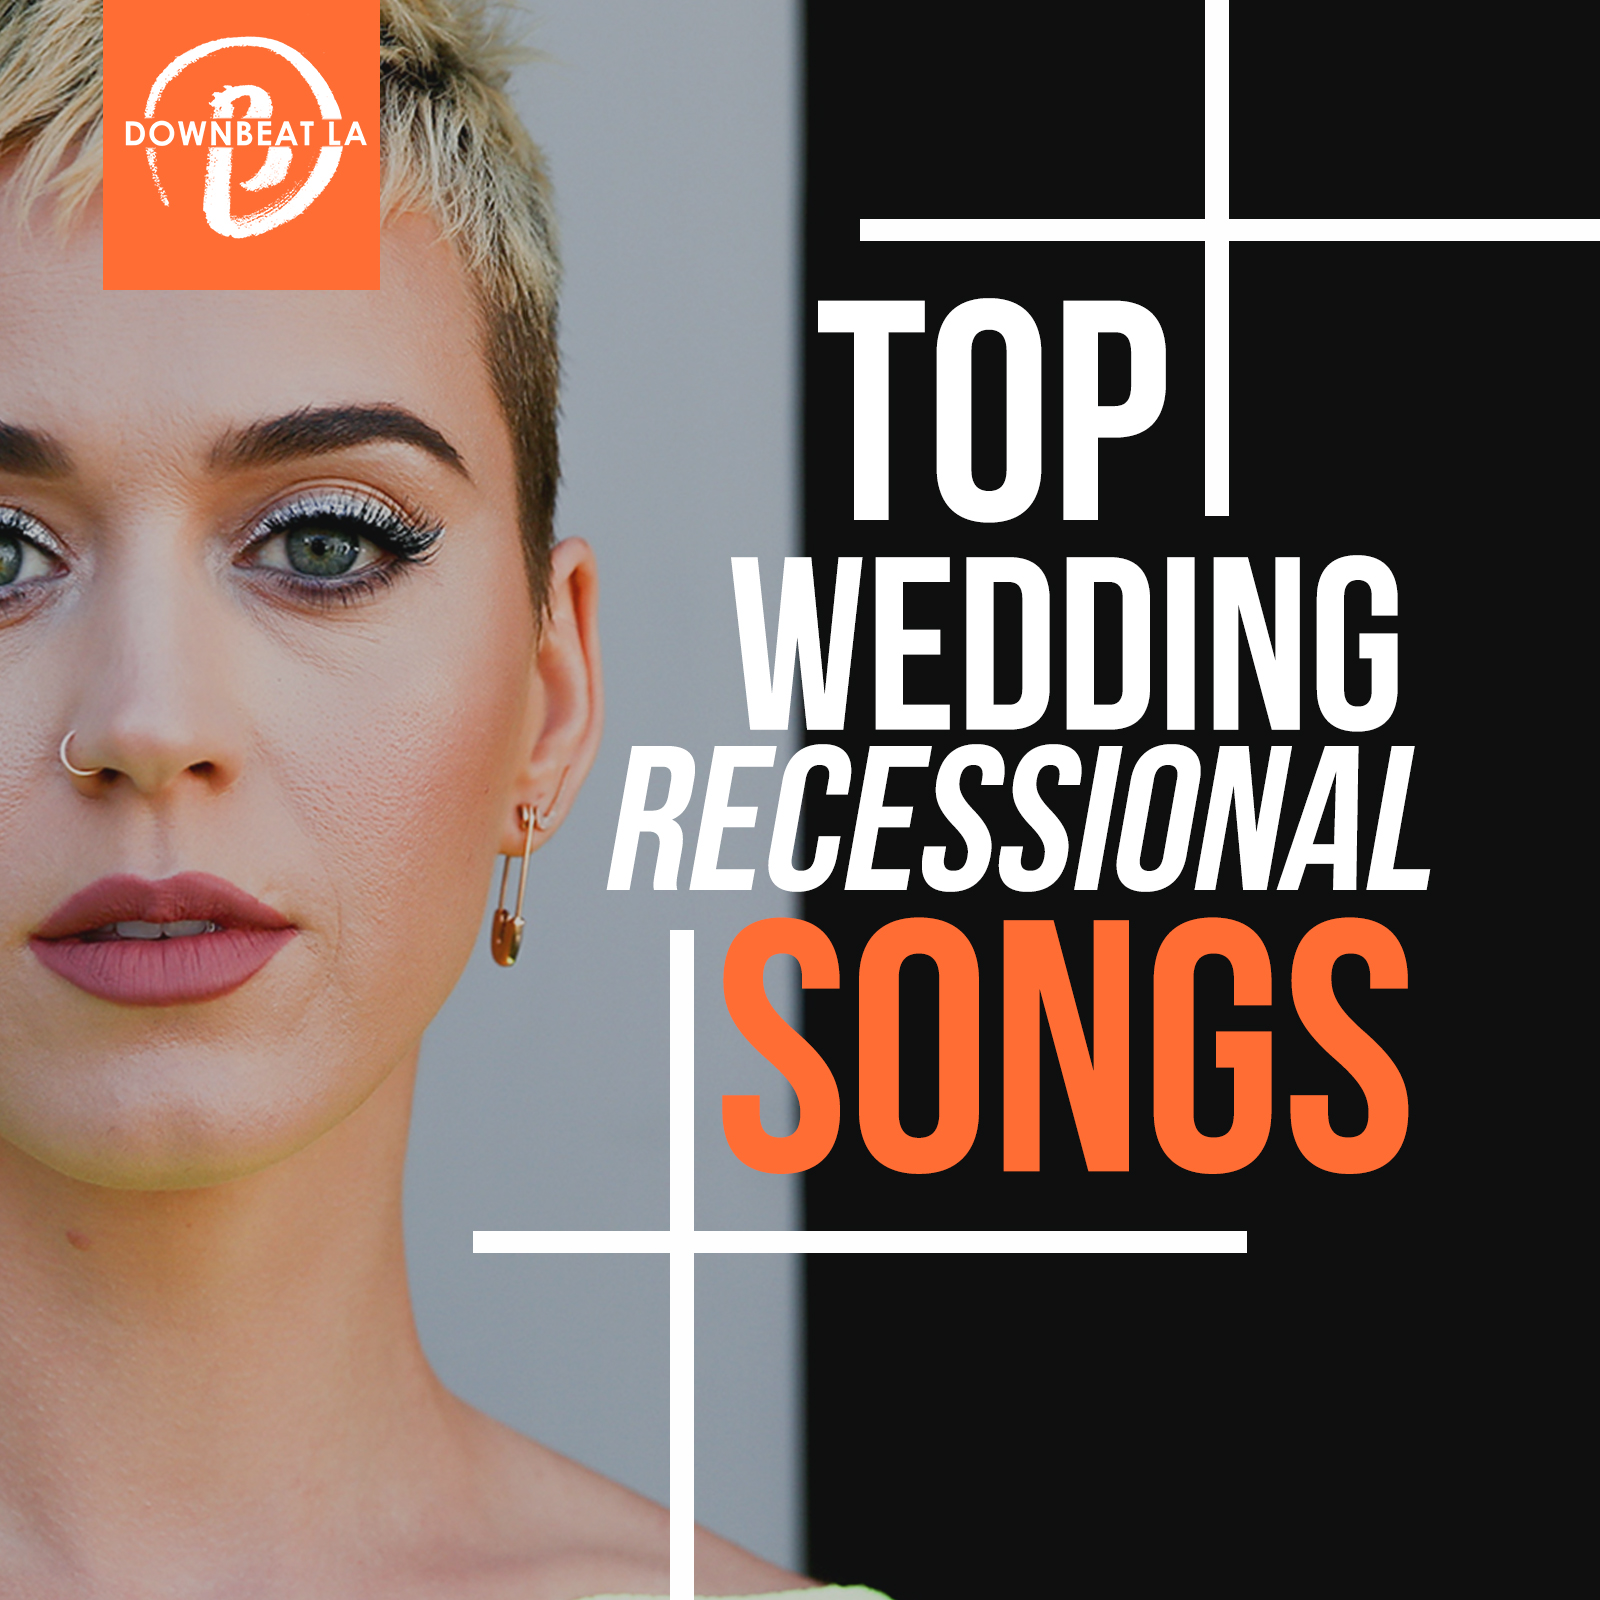 Top Wedding Recessional songs.jpg